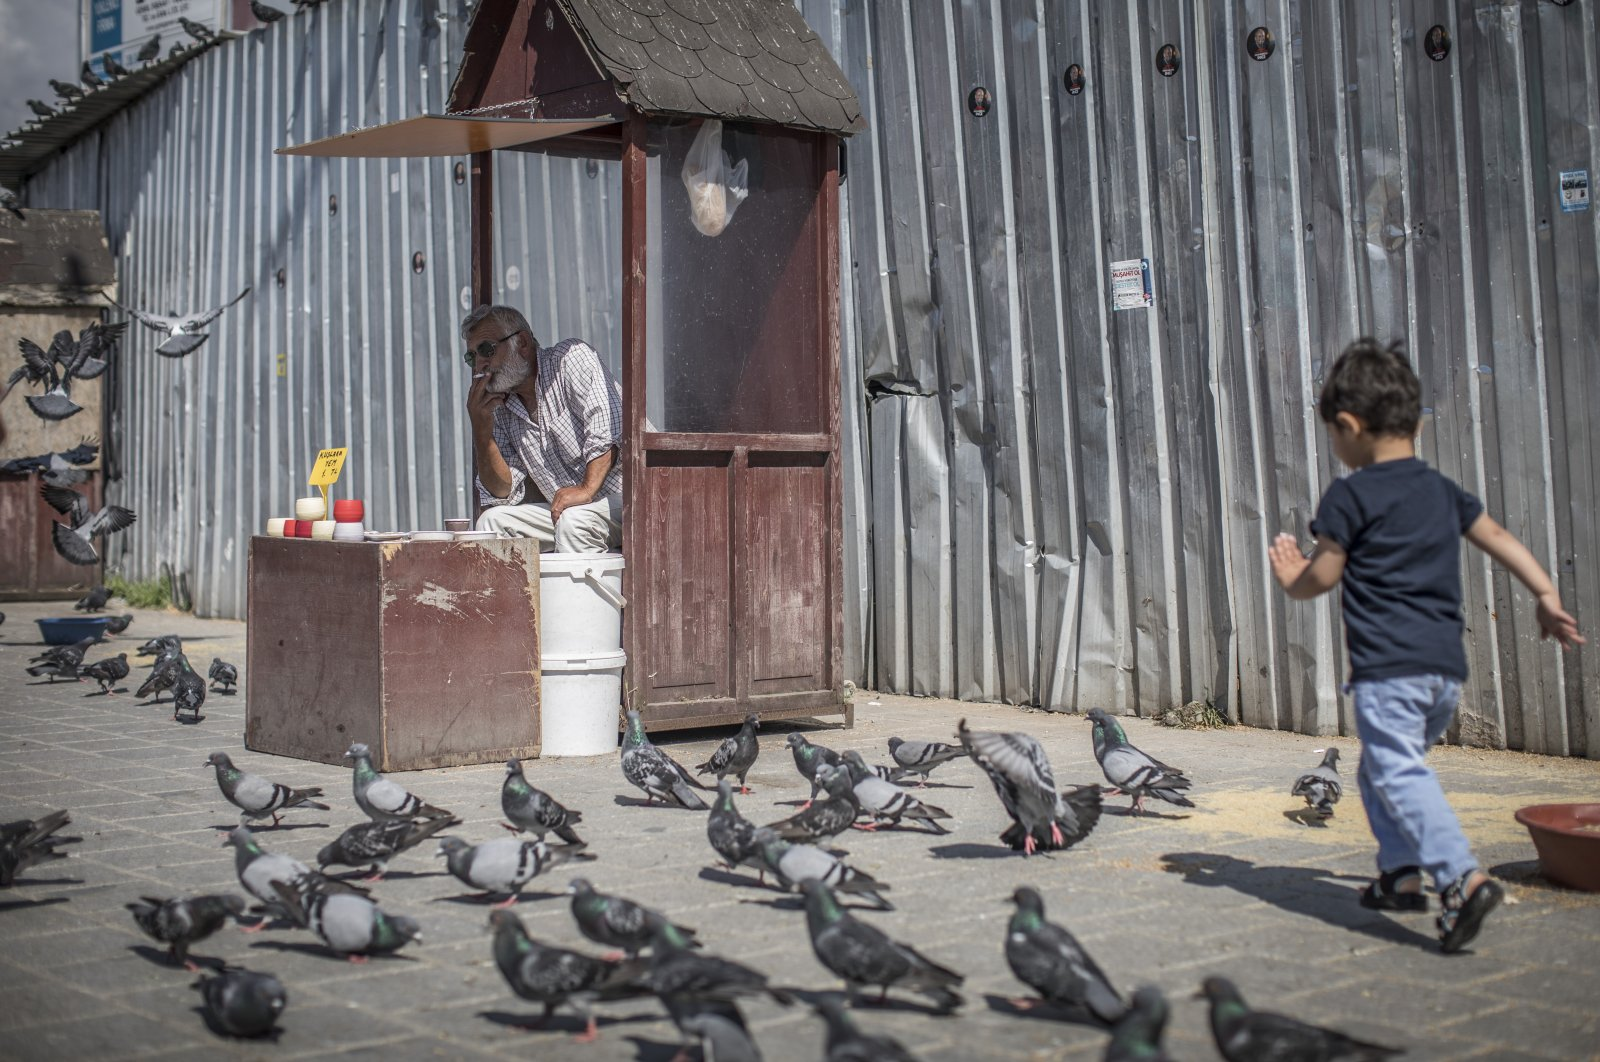 A vendor selling bird food smokes a cigarette as a boy chases pigeons in Istanbul, Turkey, 20 June 2018. (Getty Images)